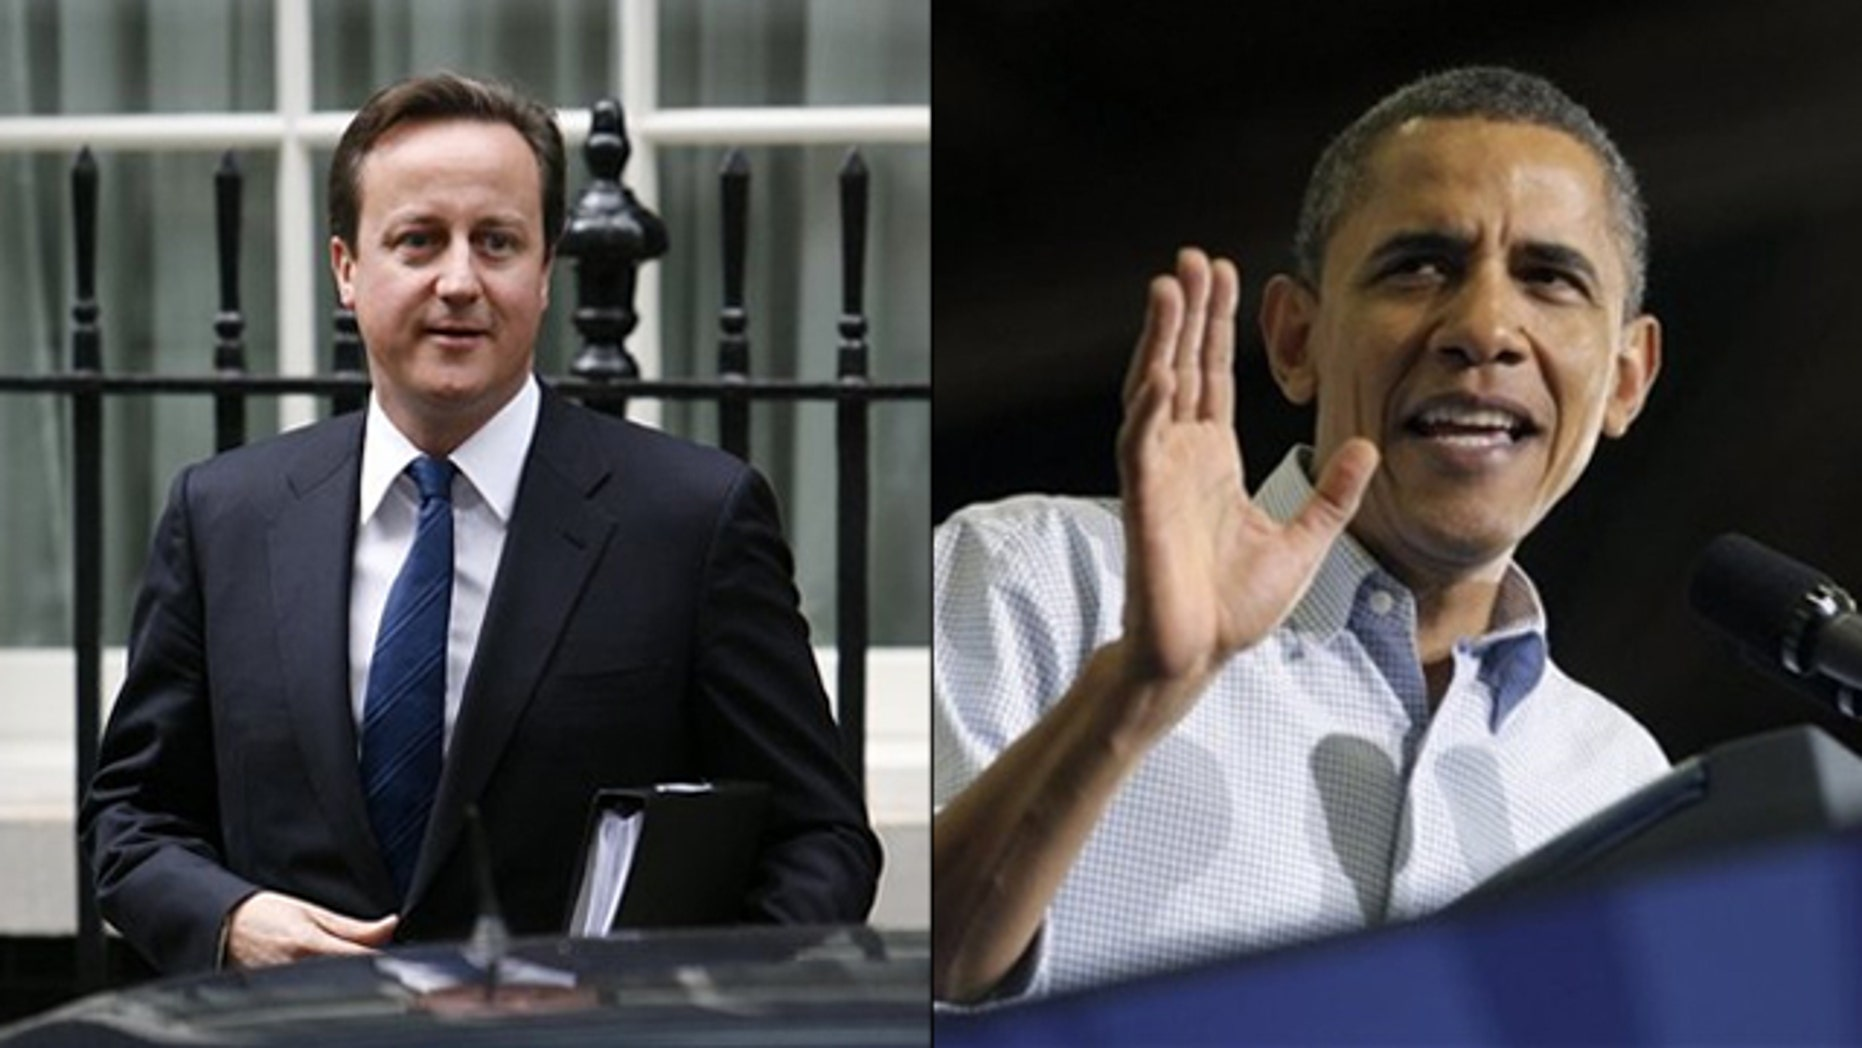 Shown here are British Prime Minister David Cameron, left, and President Obama. (AP Photos)